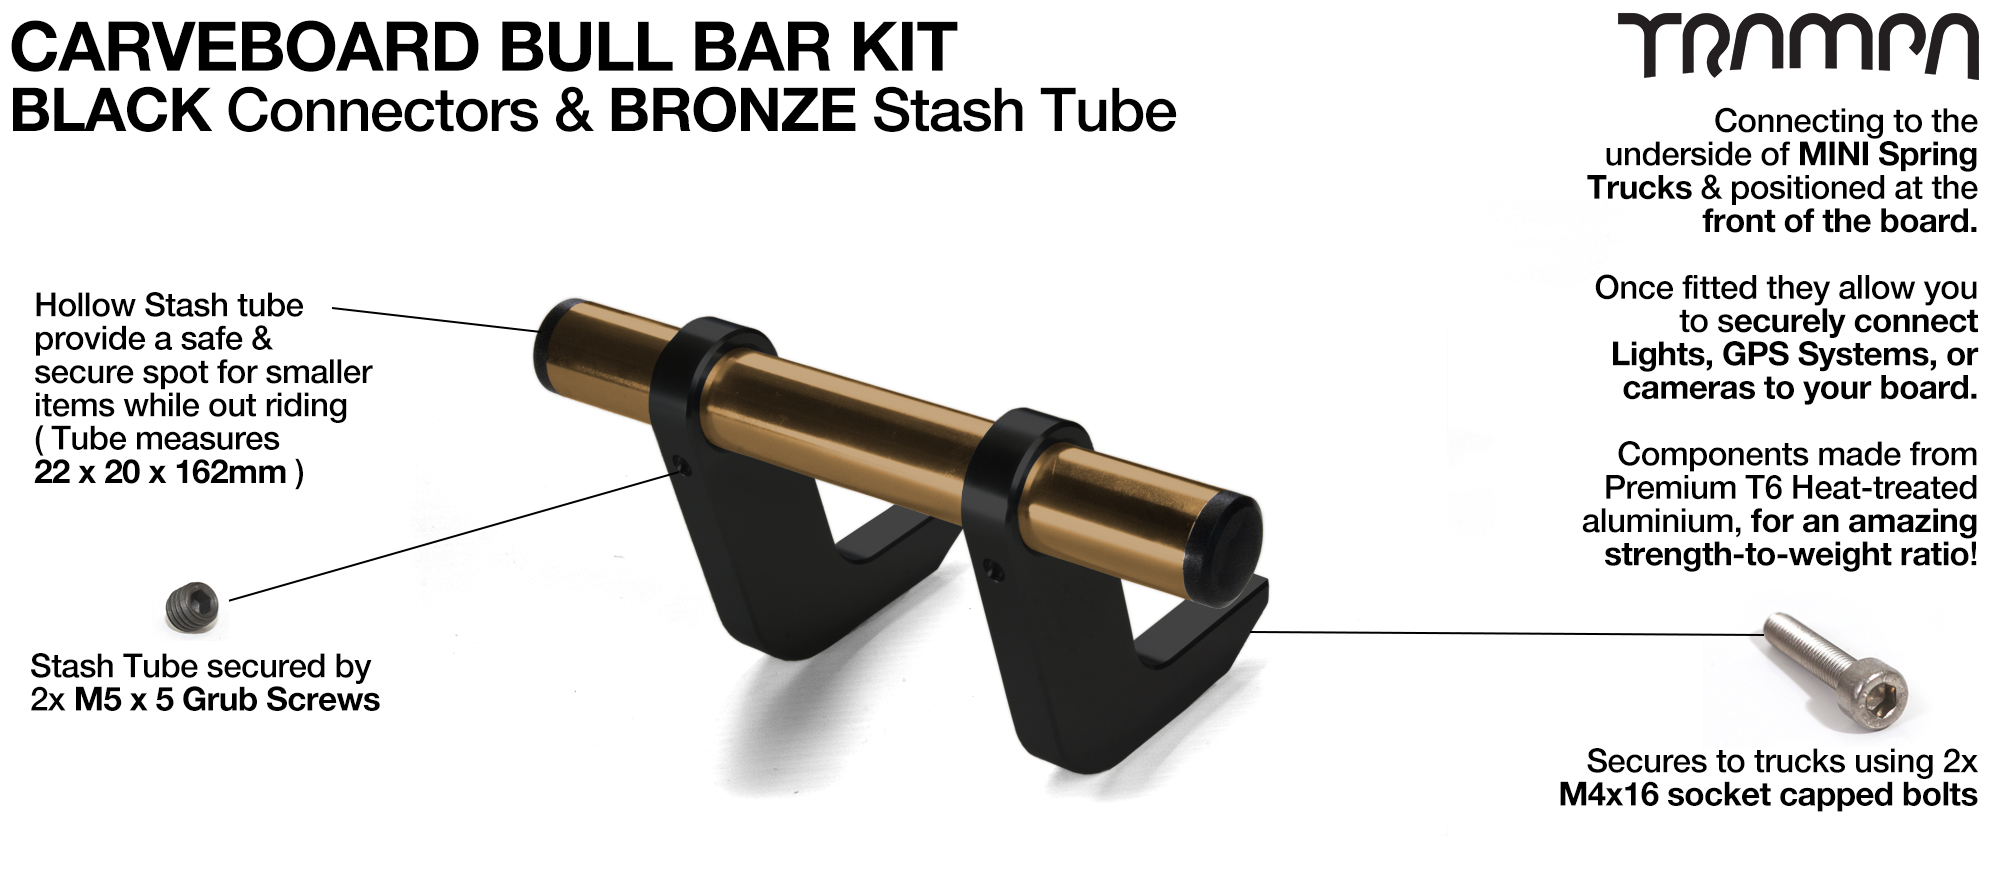 BLACK Uprights & BRONZE Crossbar BULL BARS for CARVE BOARDS using T6 Heat Treated CNC'd AluminIum Clamps, Hollow Aluminium Stash Tubes with Rubber end bungs